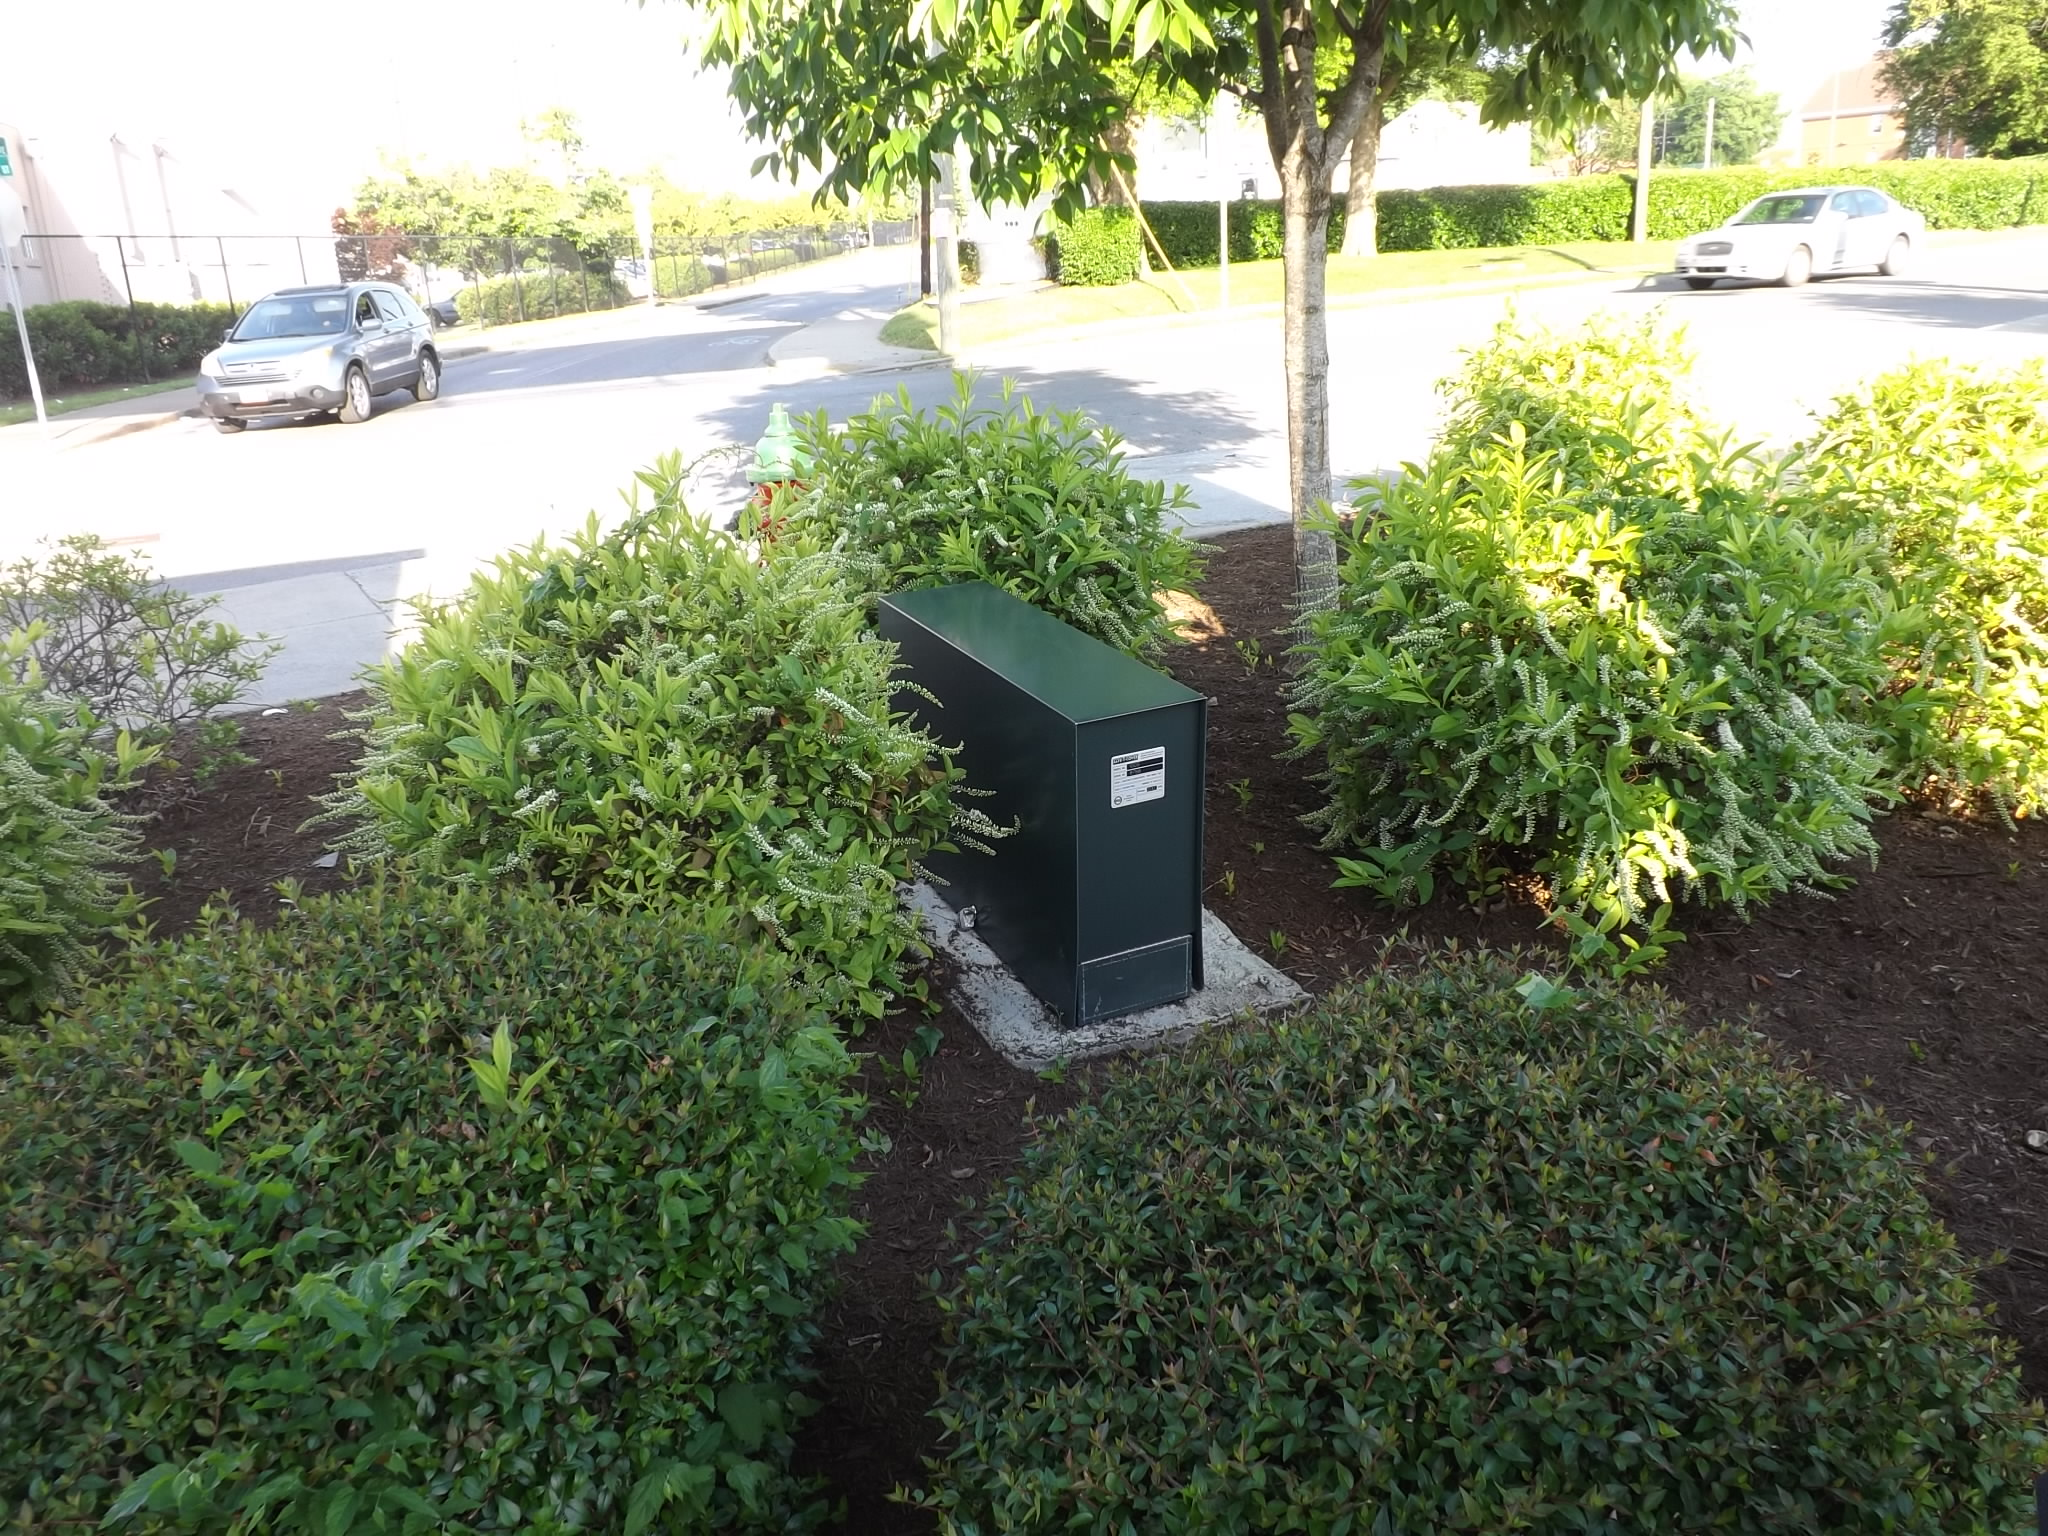 hartford green enclosure in landscaping.jpg